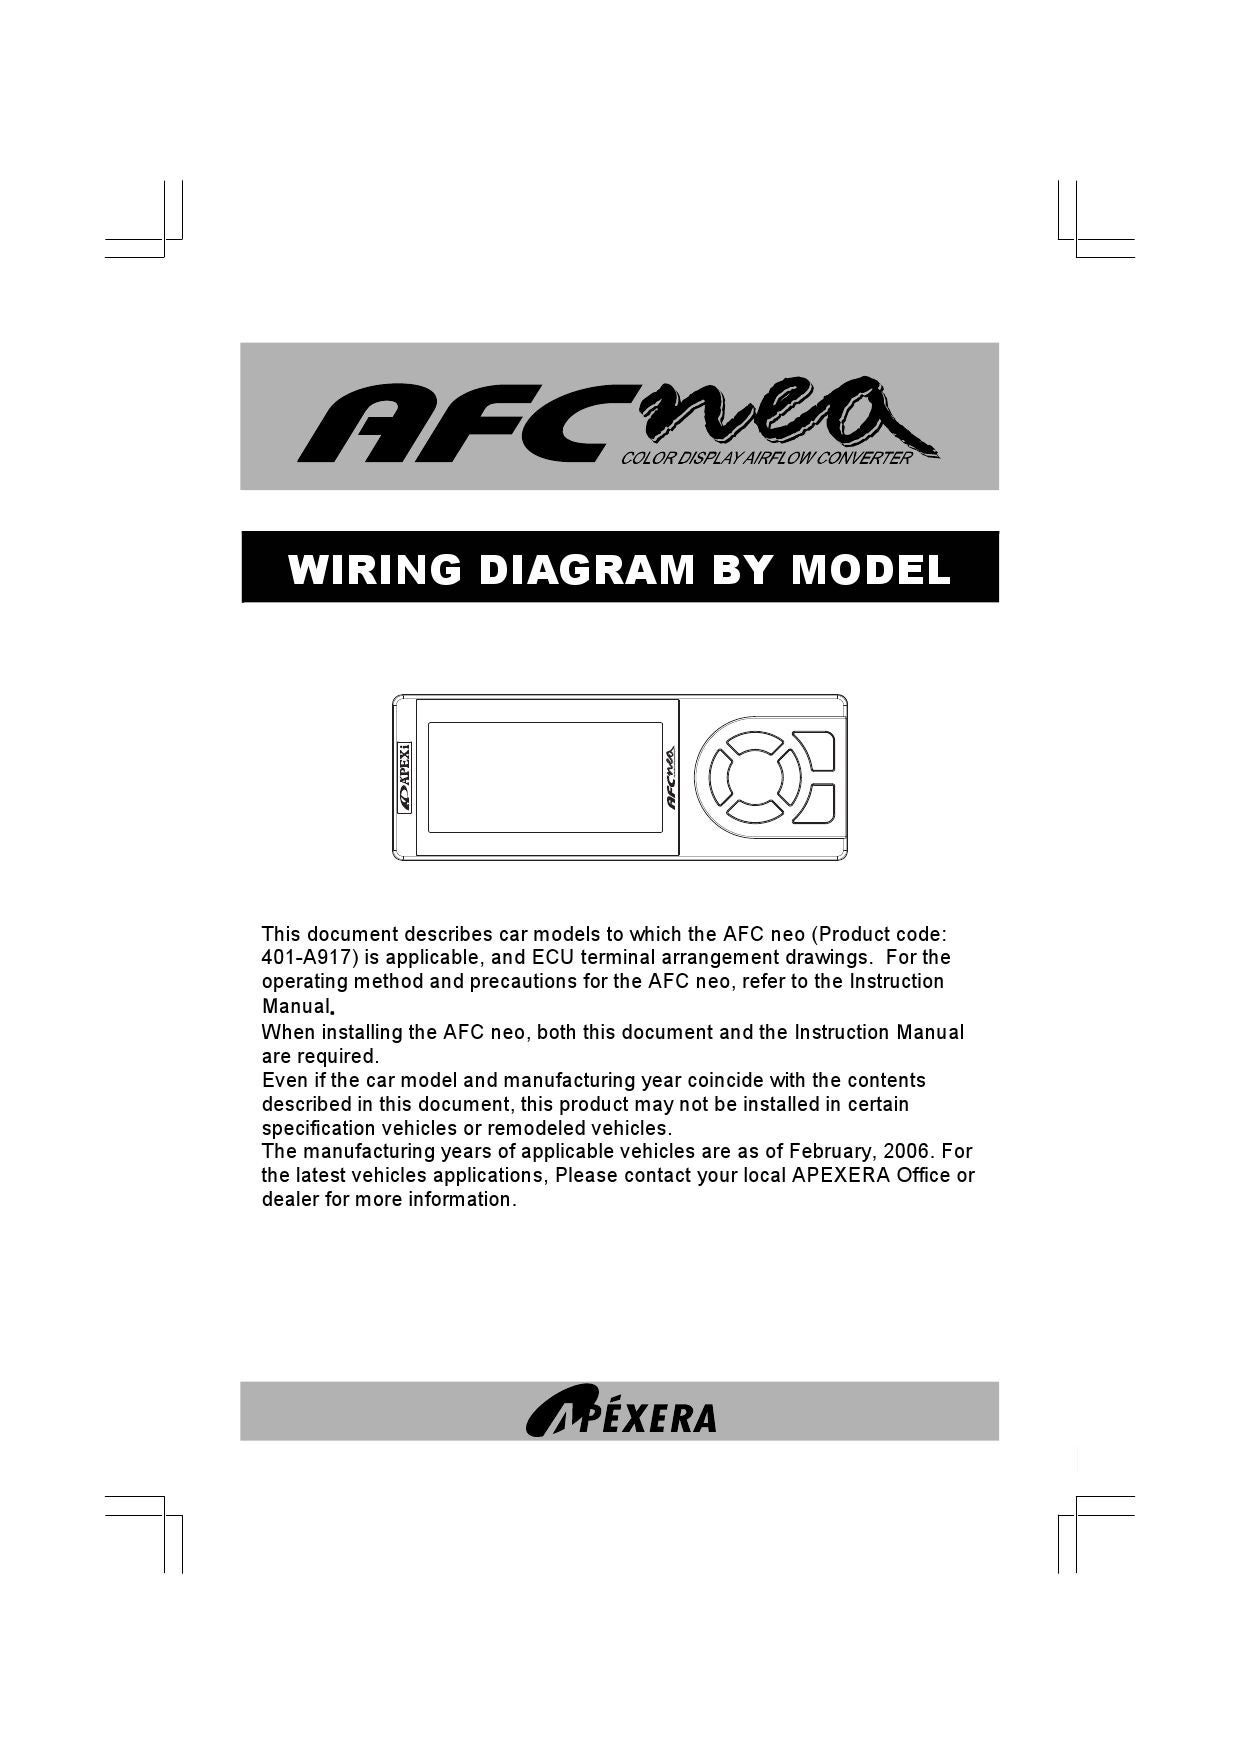 Neo AFC Wiring Diagram by Honda & Acura Club de Costa Rica - issuu